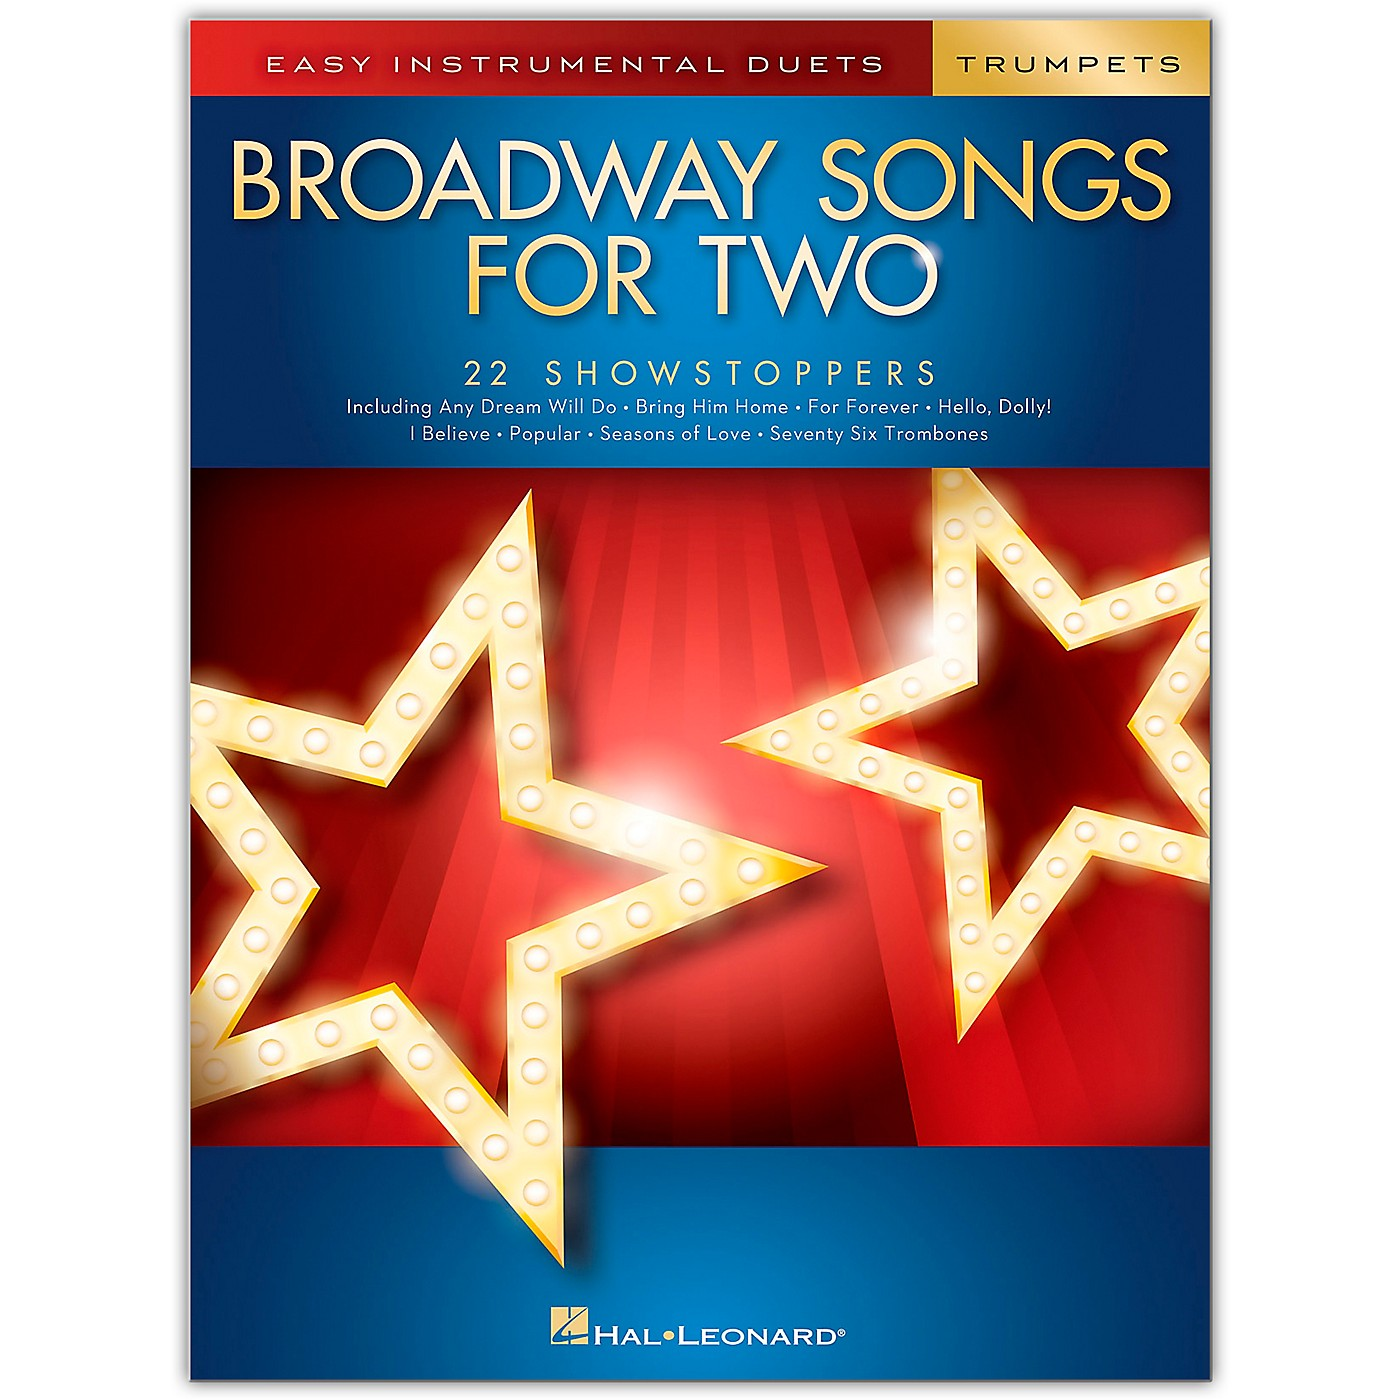 Hal Leonard Broadway Songs for Two Trumpets - Easy Instrumental Duets thumbnail